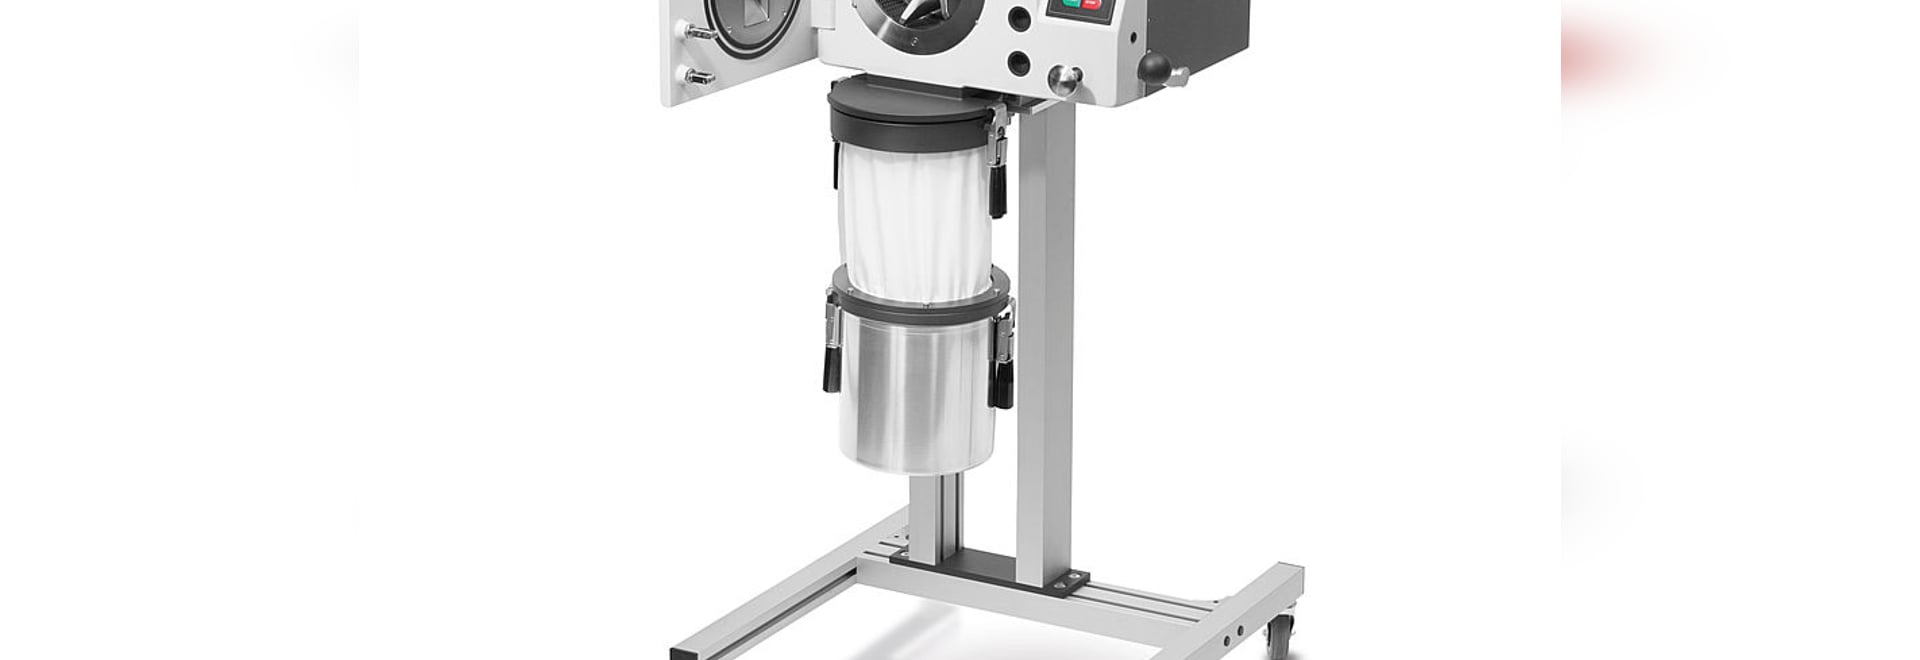 Variable speed and large sample volumes: RETSCH''s new rotor mills